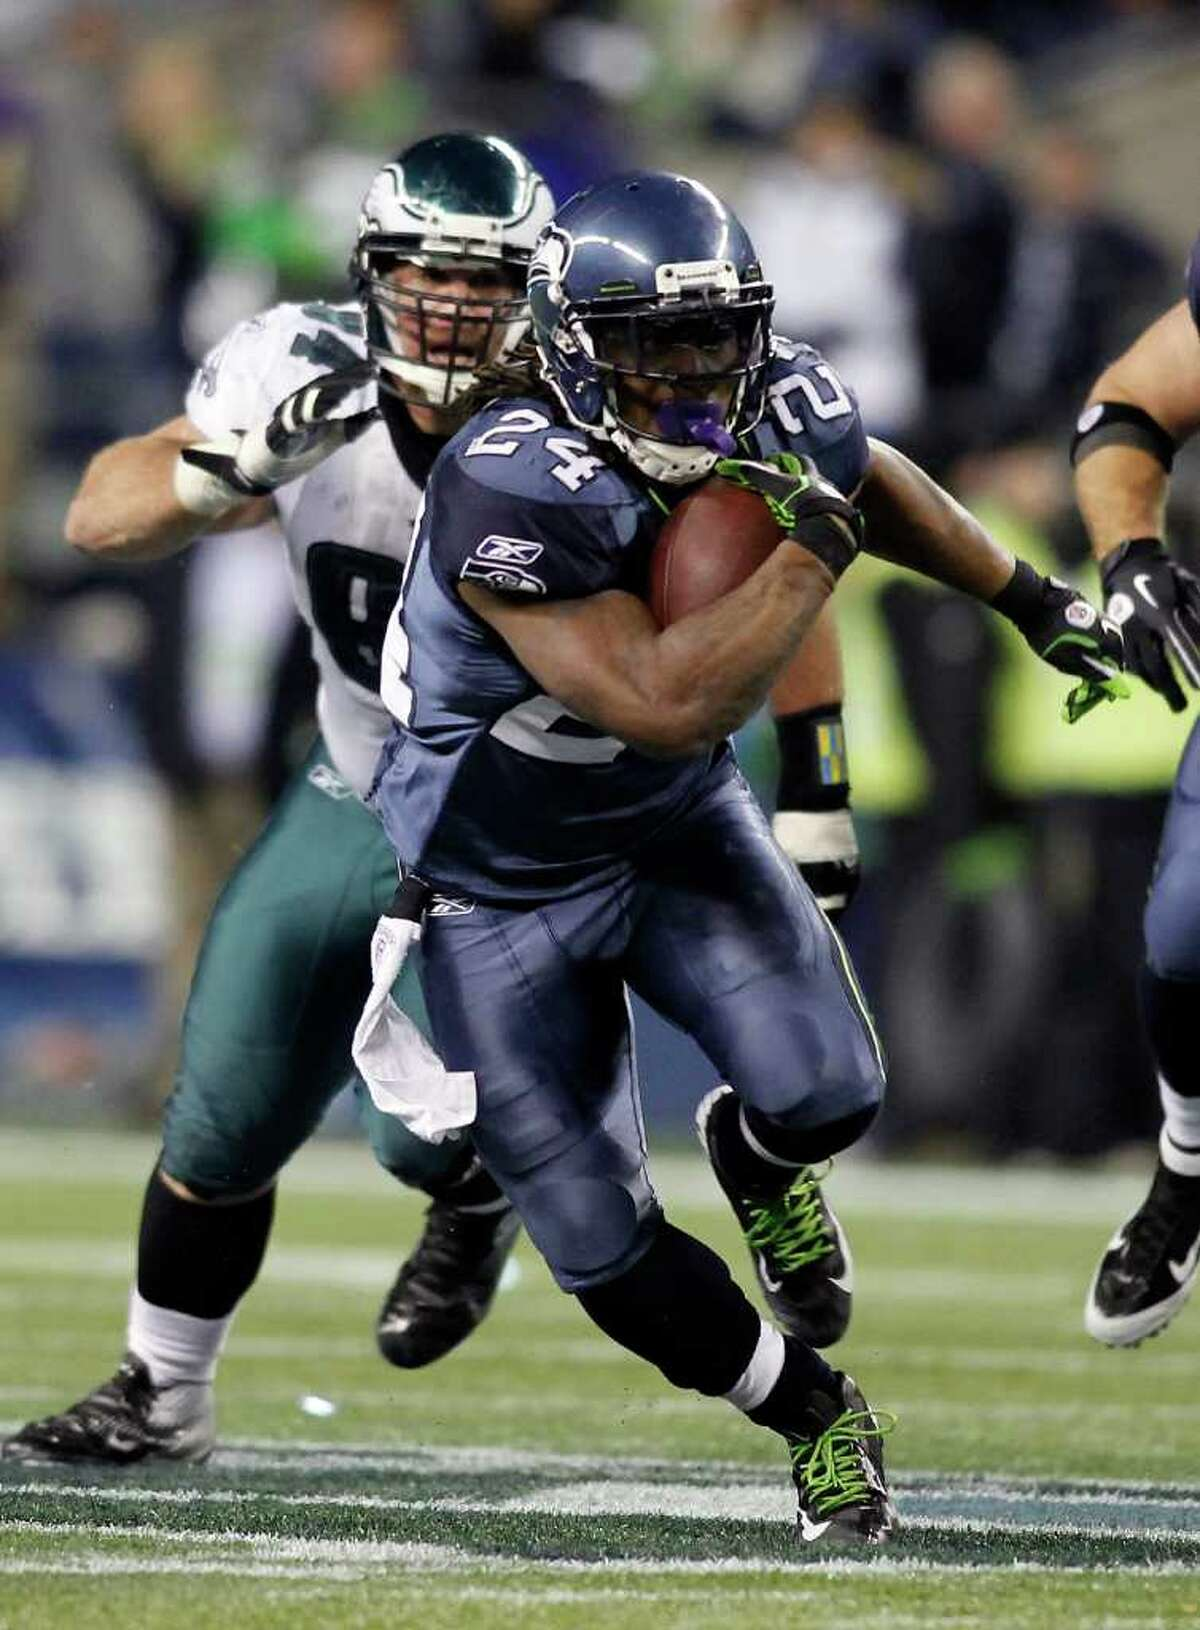 SEATTLE - DECEMBER 01: Marshawn Lynch #24 of the Seattle Seahawks runs with the ball against the Philadelphia Eagles defense on December 1, 2011 at CenturyLink Field in Seattle, Washington.